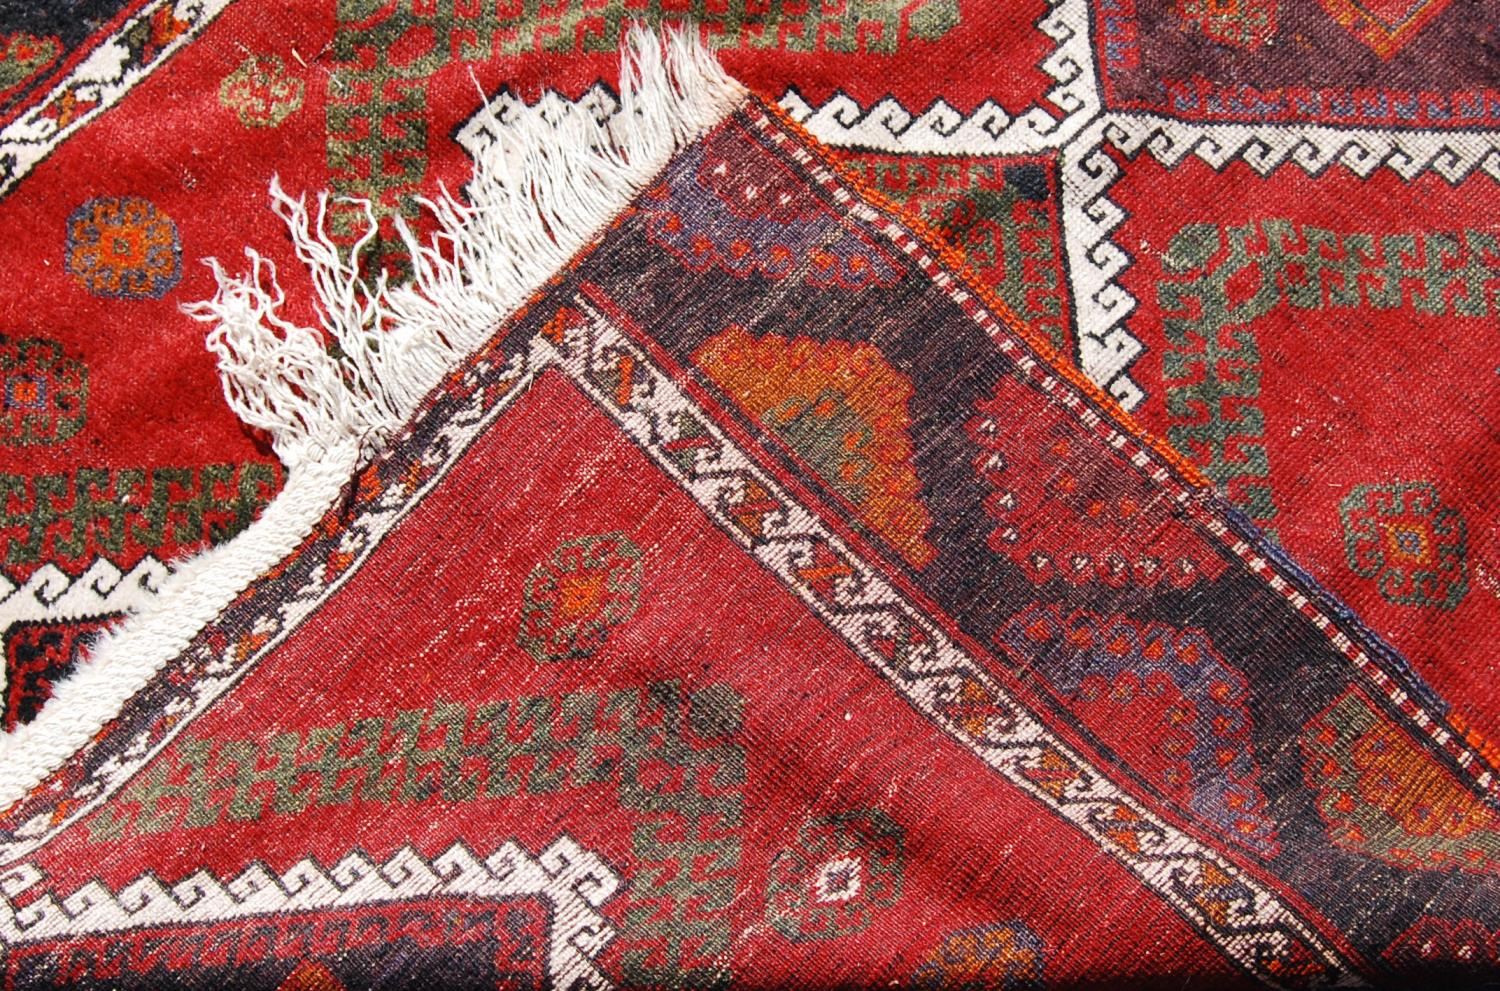 Persian long rug, the six diamonds with panel and rosettes over red ground and border, 330cm x - Image 3 of 4